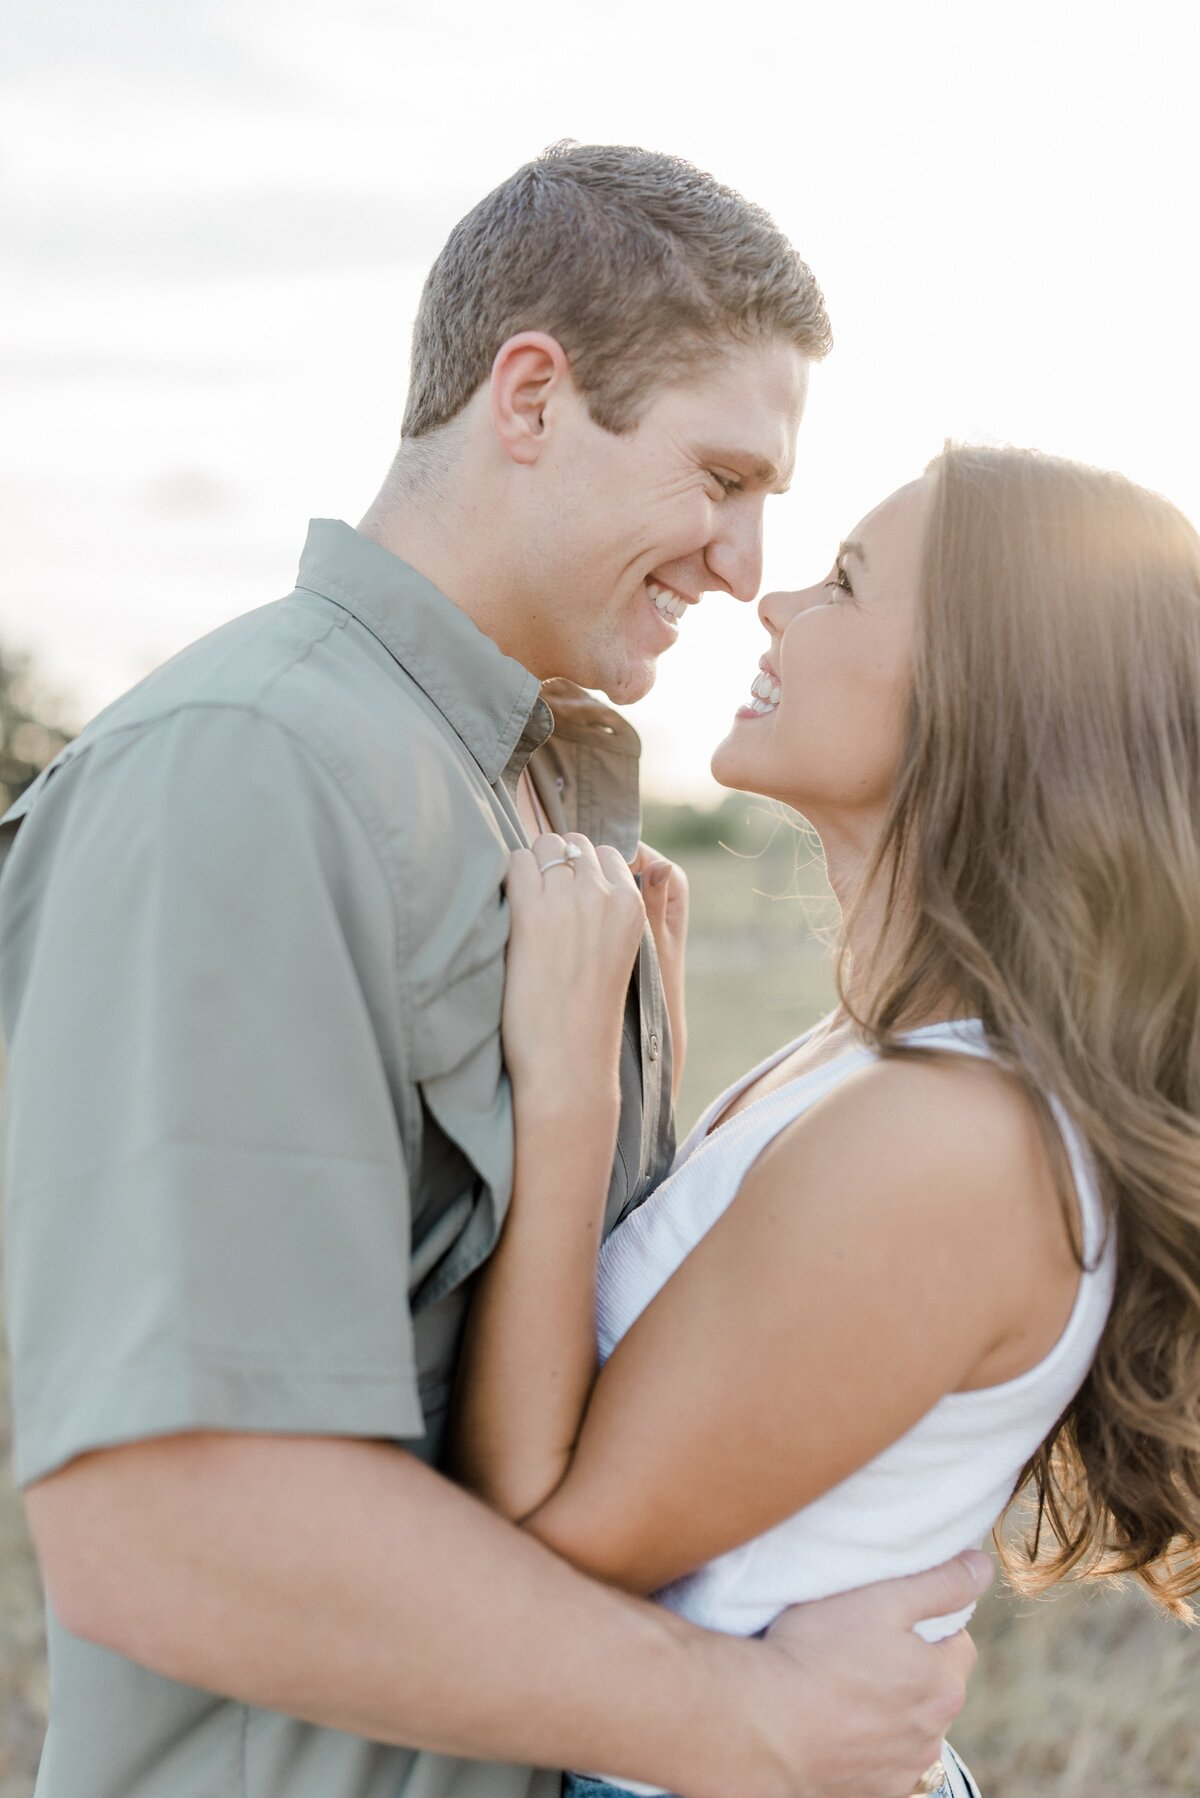 Oudoor Texas Engagement Session | Patti Darby Photography 15